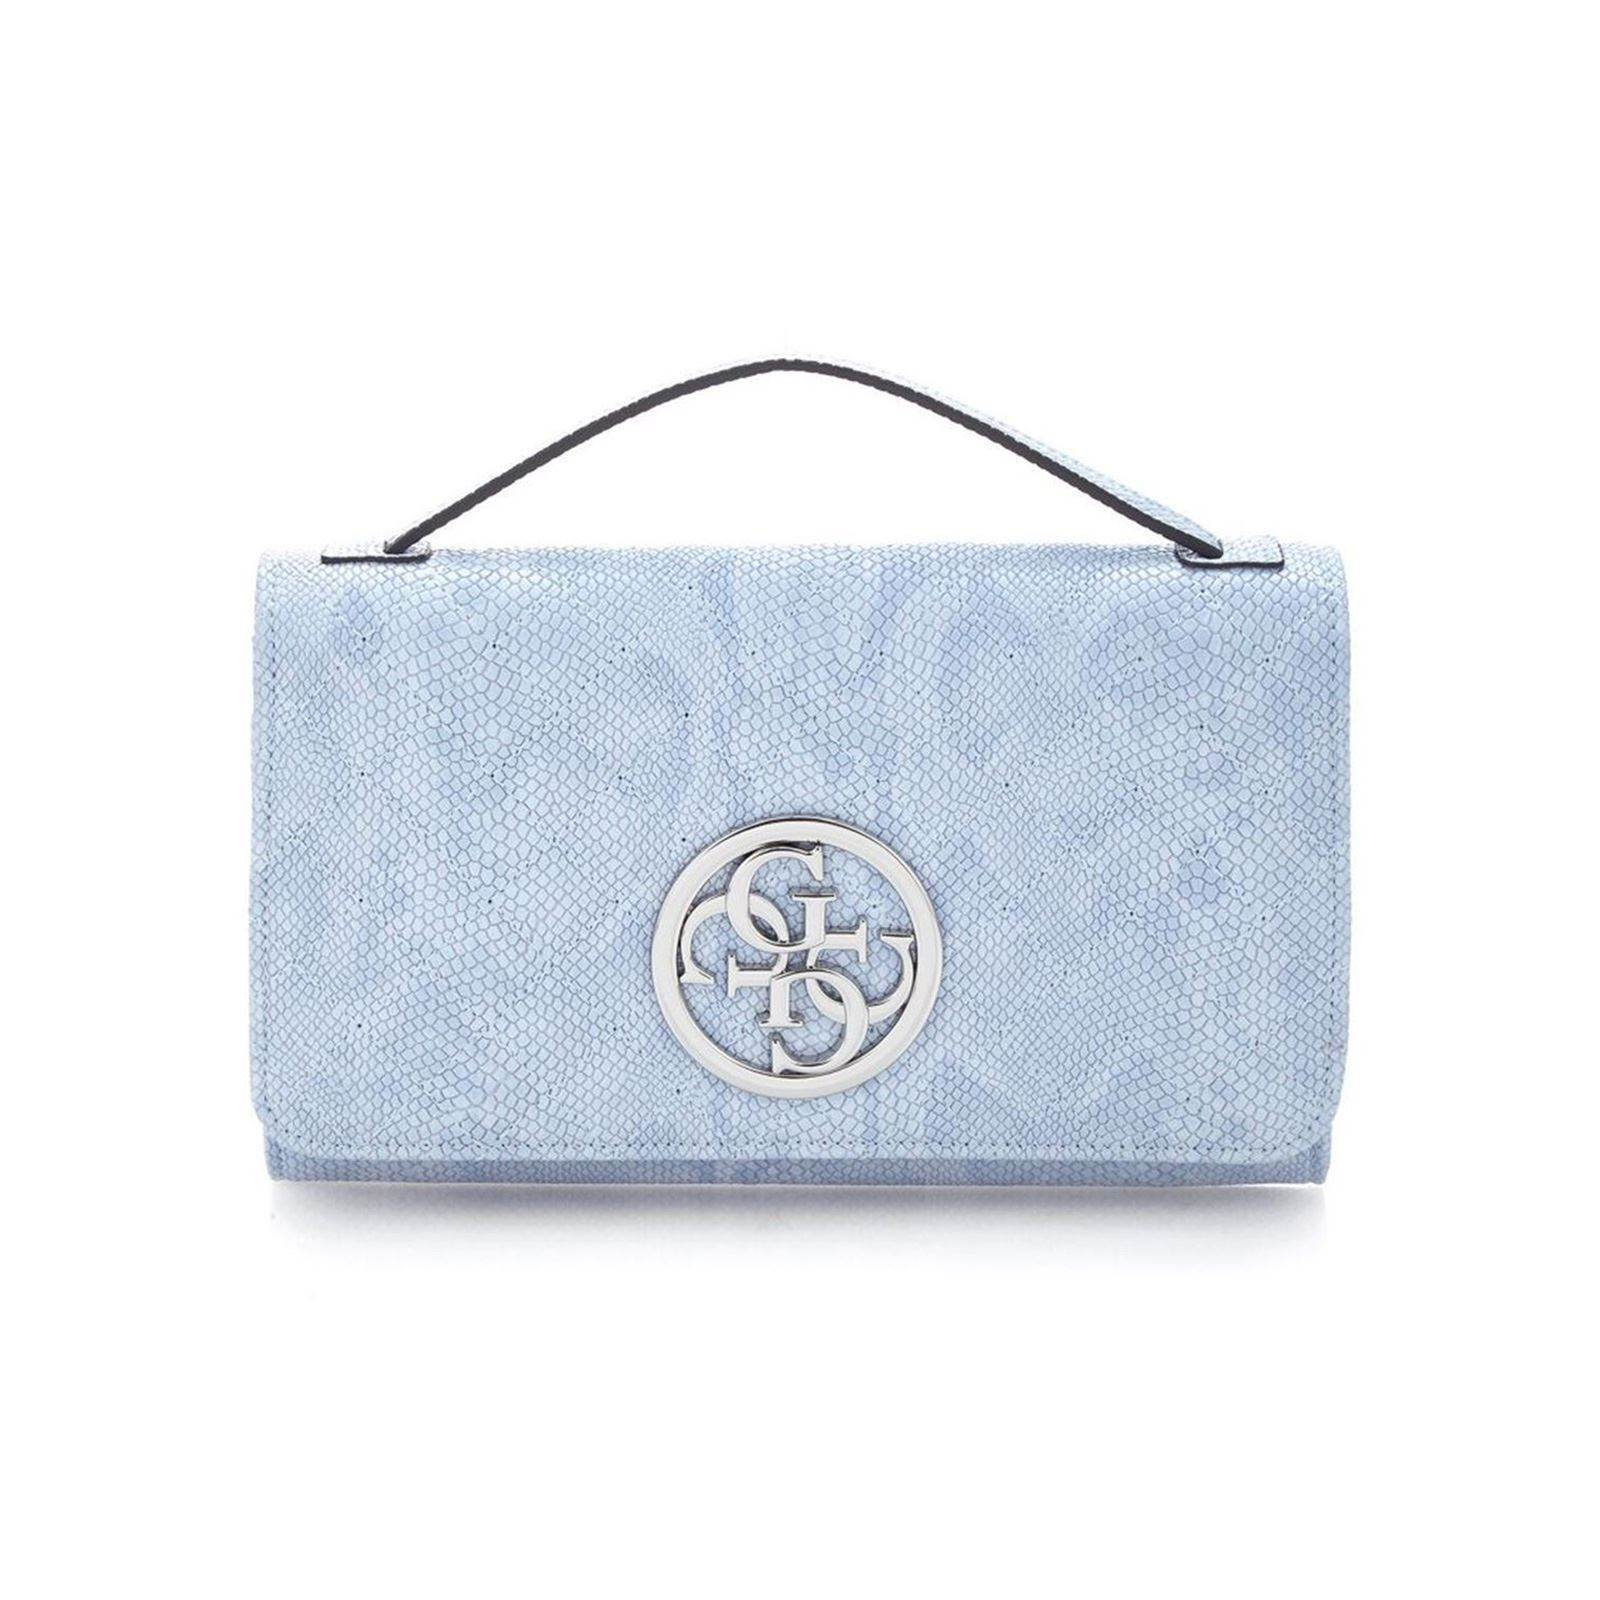 Borsa Brandalley Guess a Wallet Sky Blue Lux tracolla r87Hr